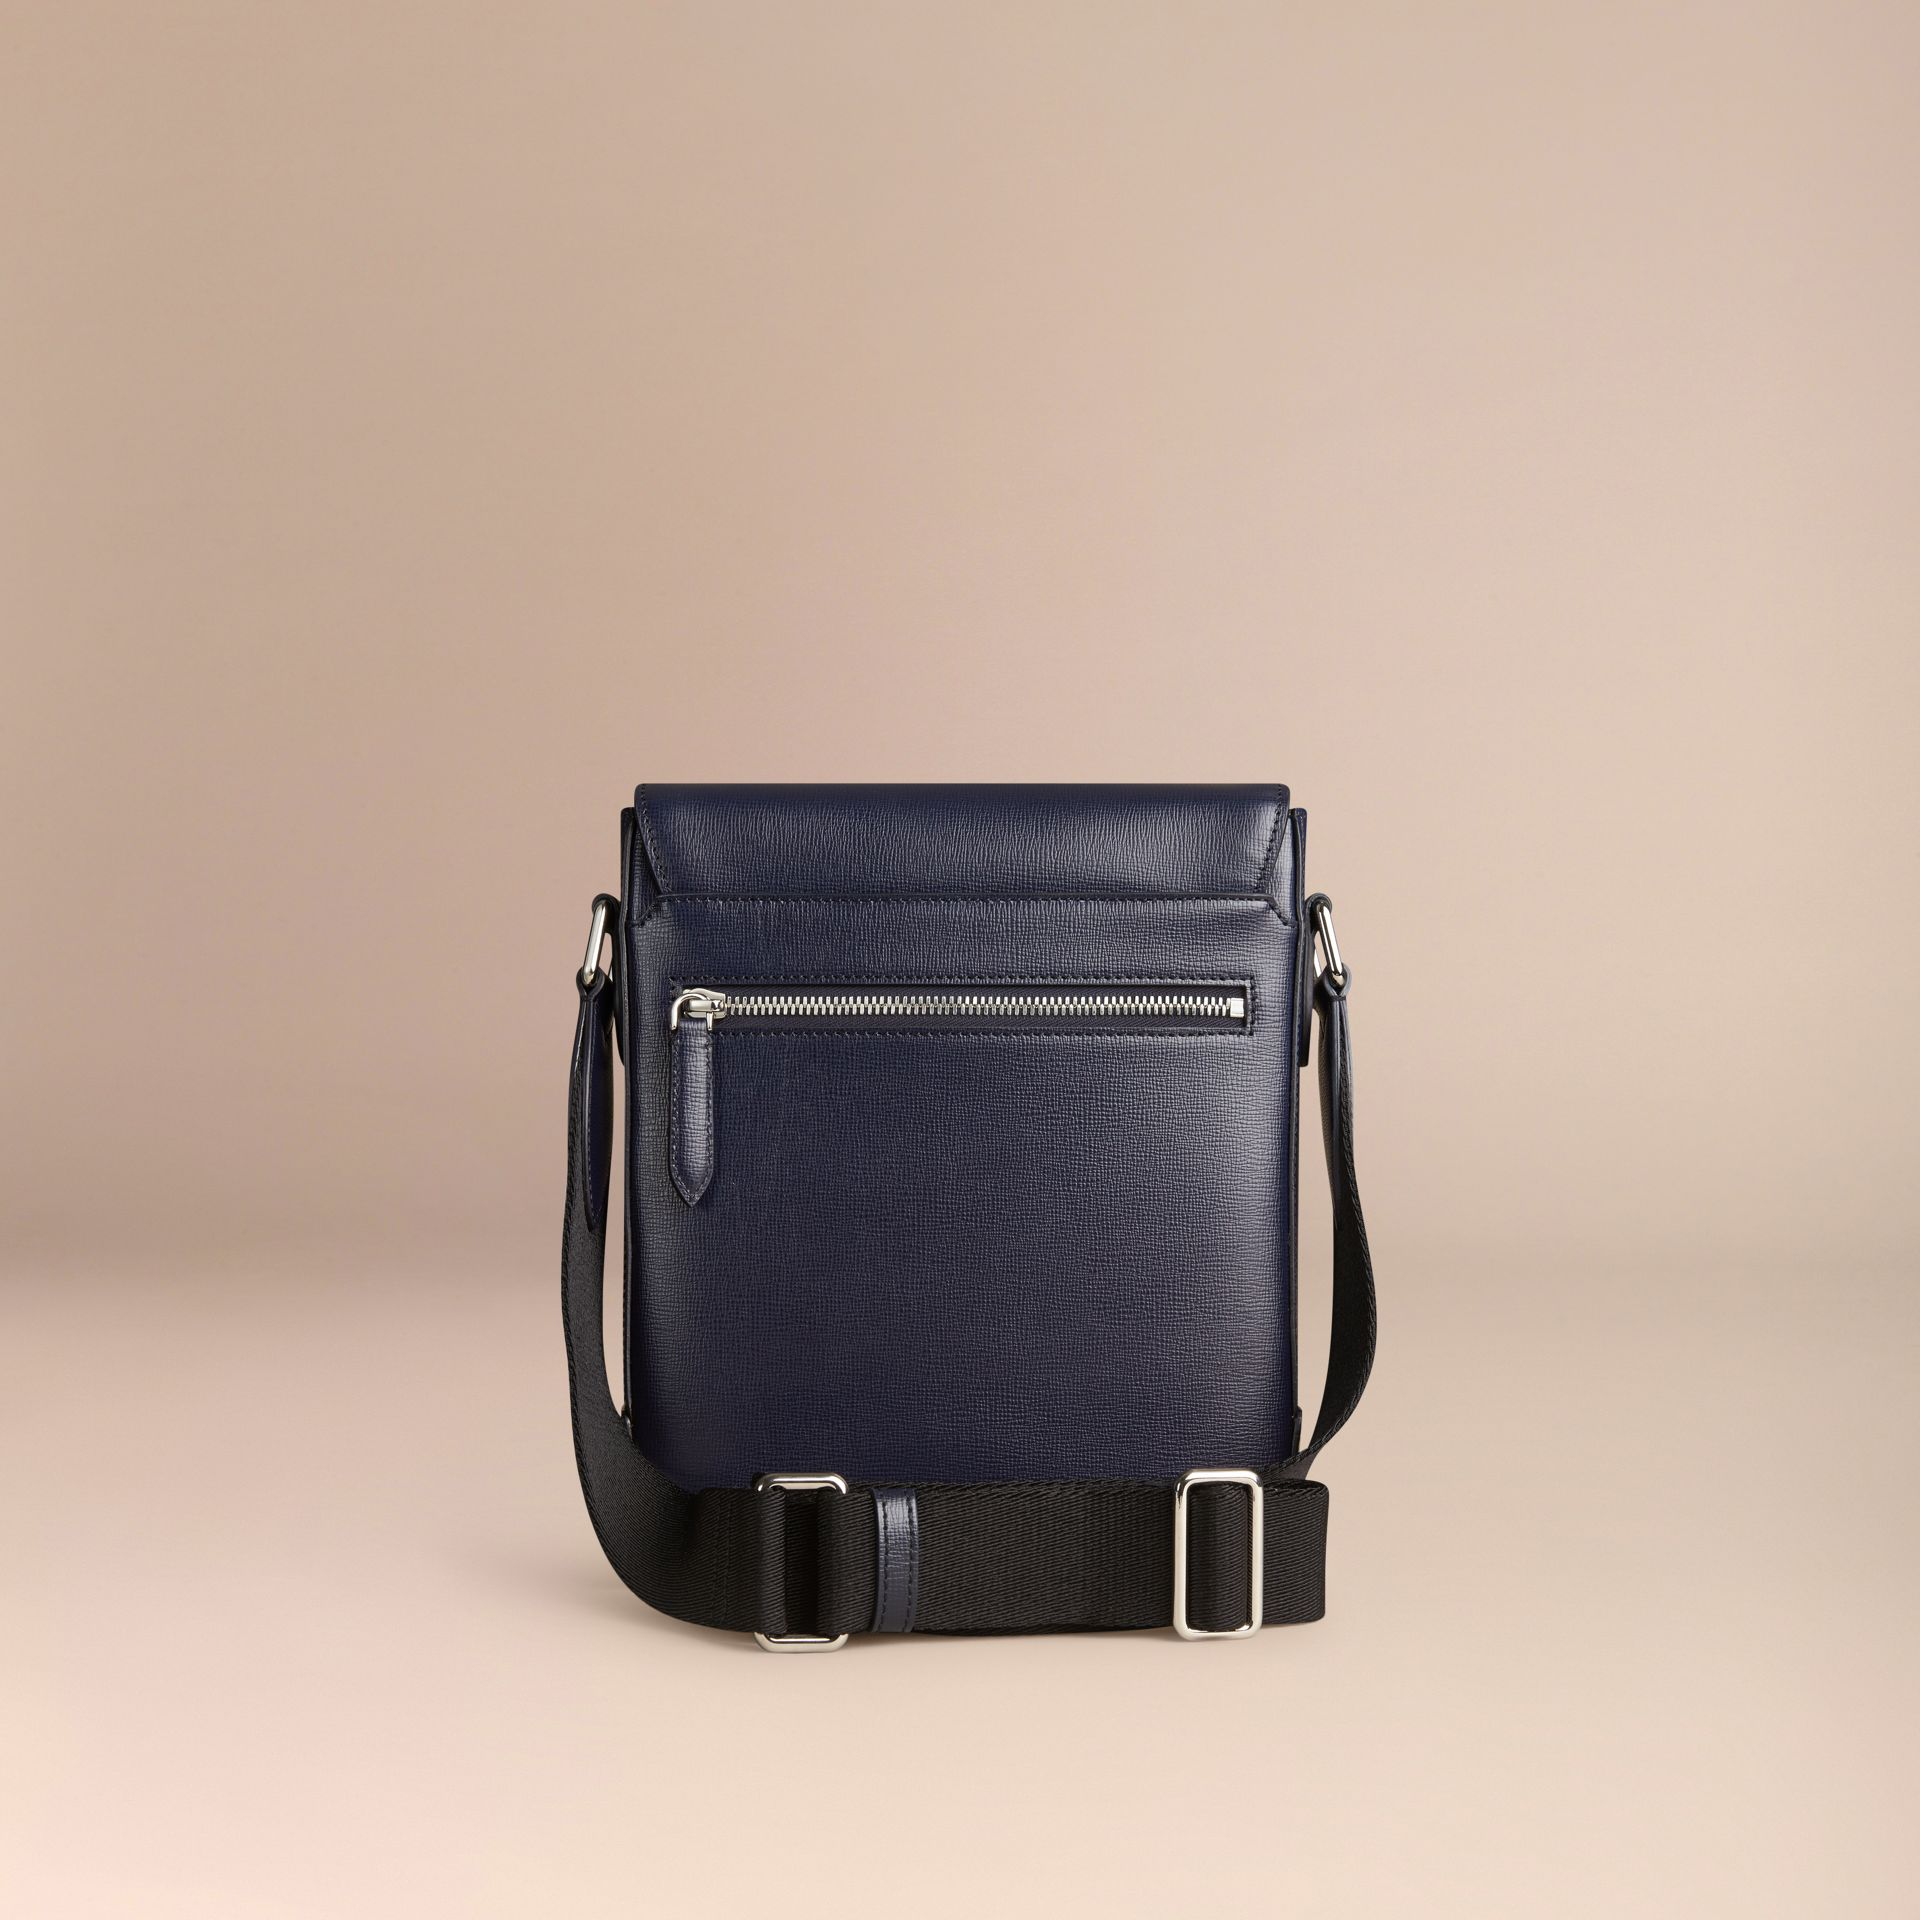 London Leather Crossbody Bag in Dark Navy - Men | Burberry - gallery image 4